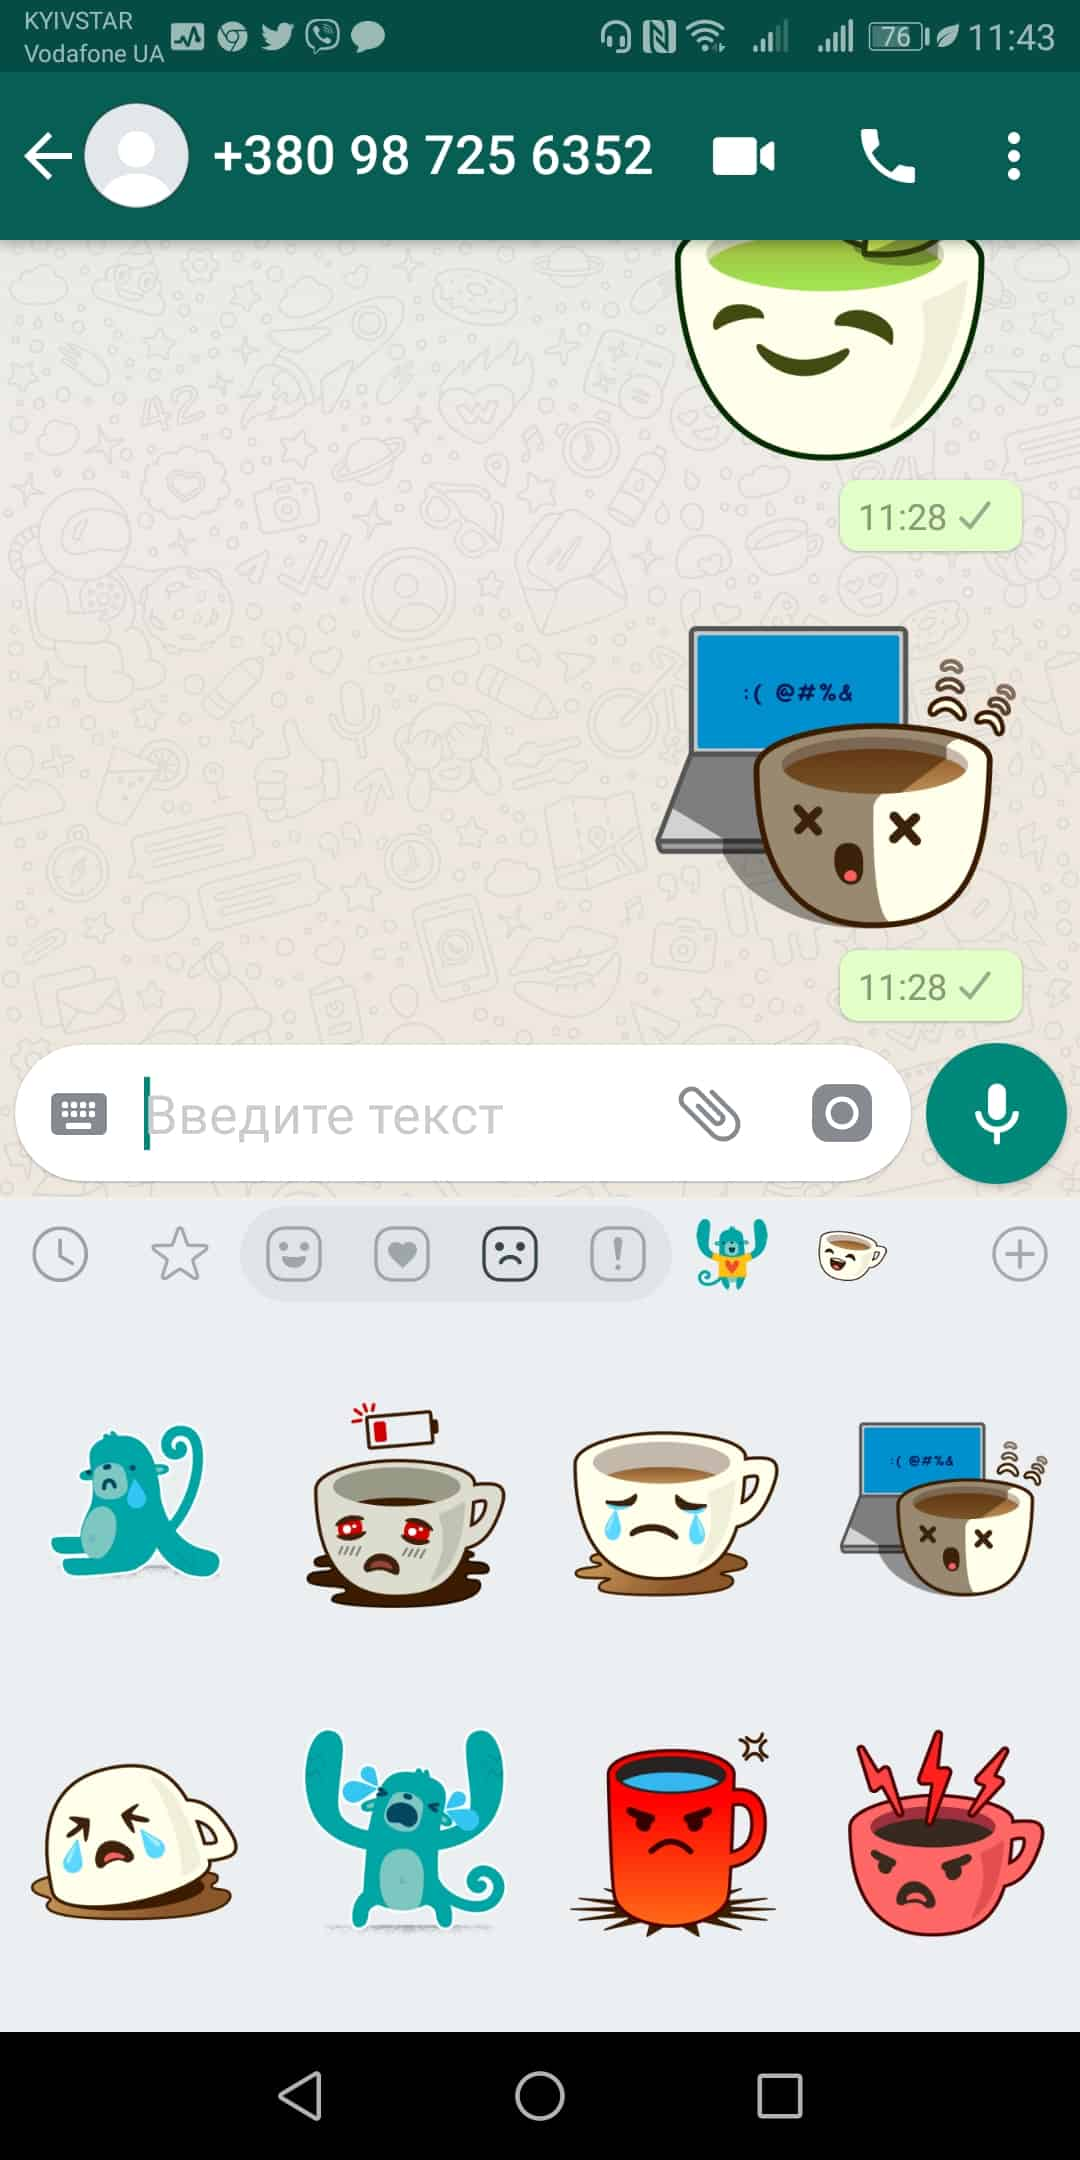 Картинка 4 В WhatsApp появились стикеры! Спешите узнать, как ими пользоваться!